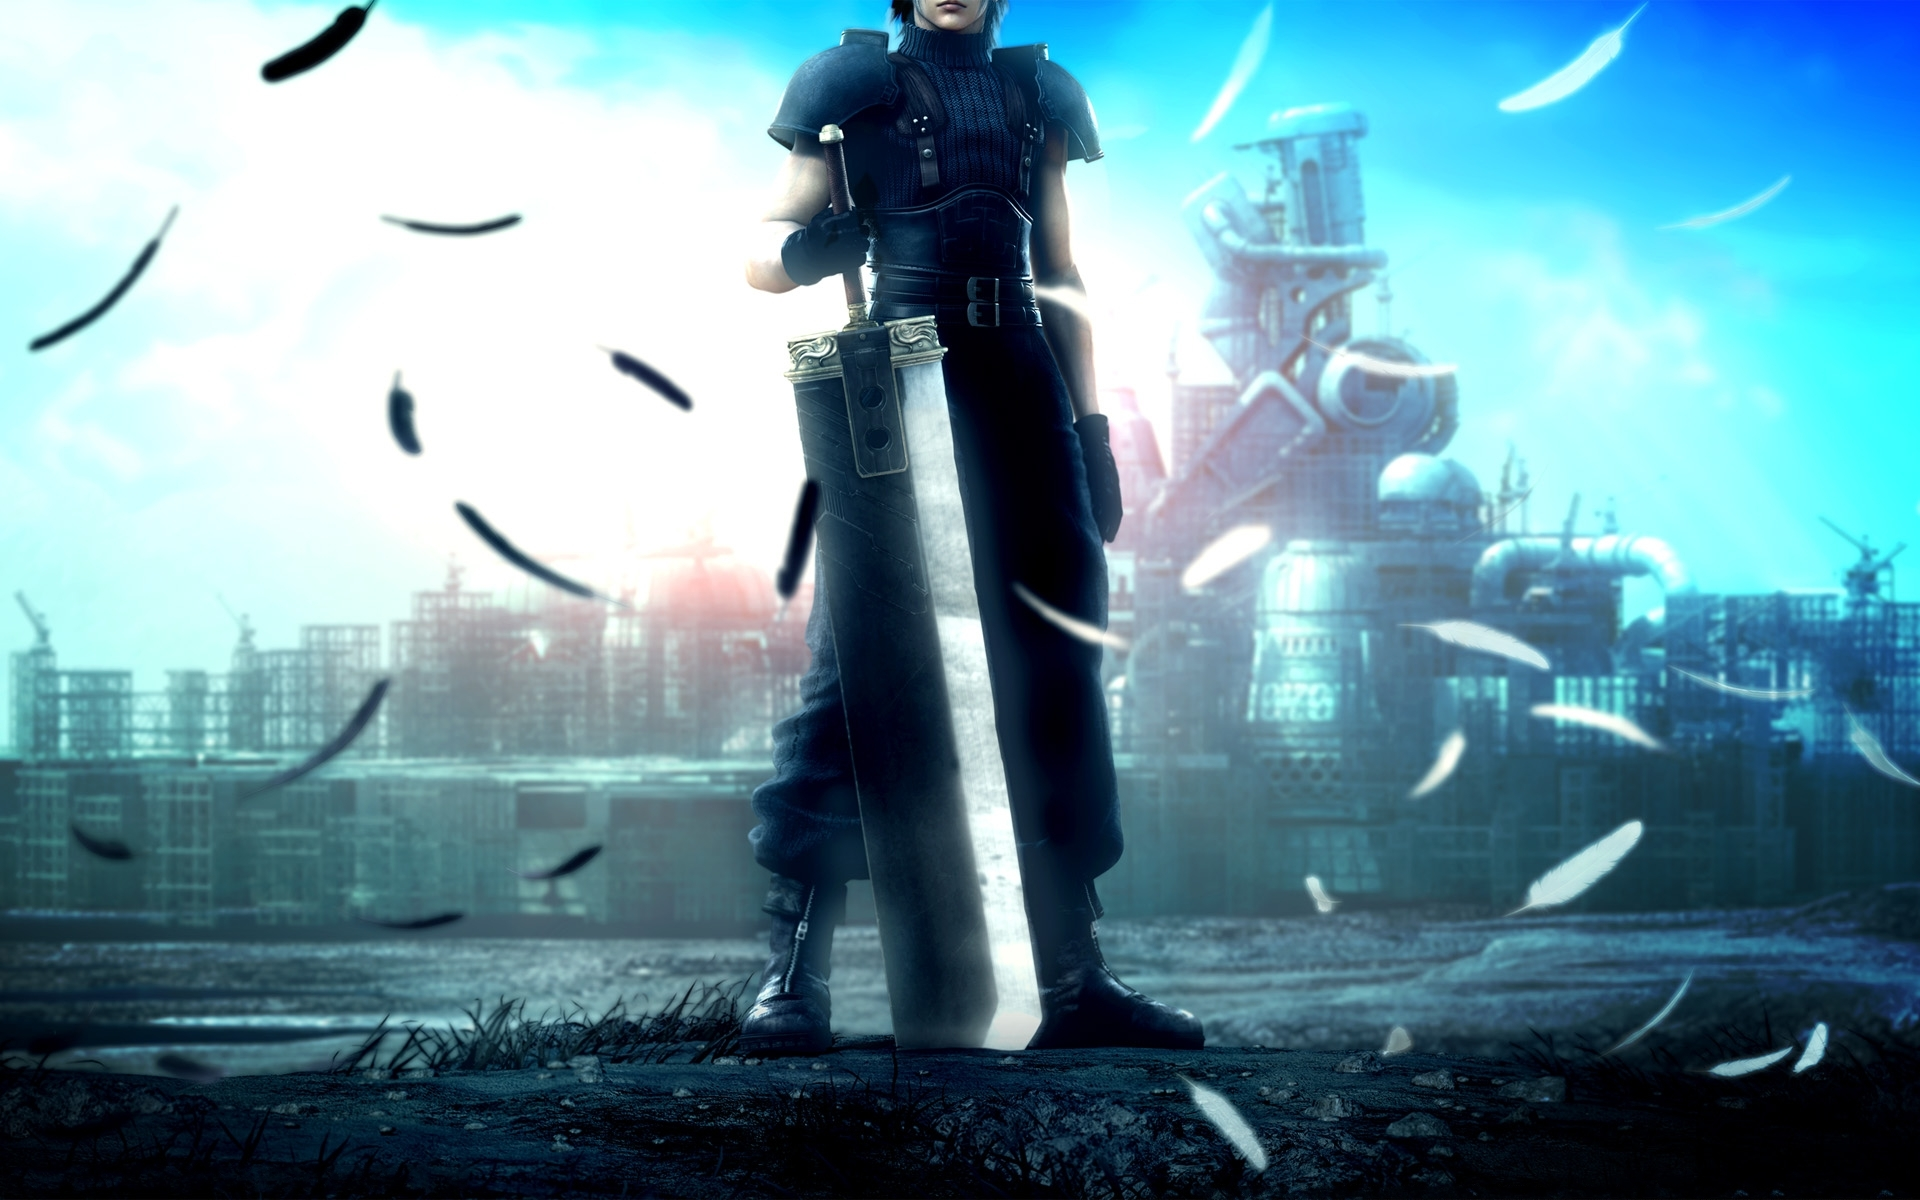 crisis core: final fantasy vii full hd fond d'écran and arrière-plan